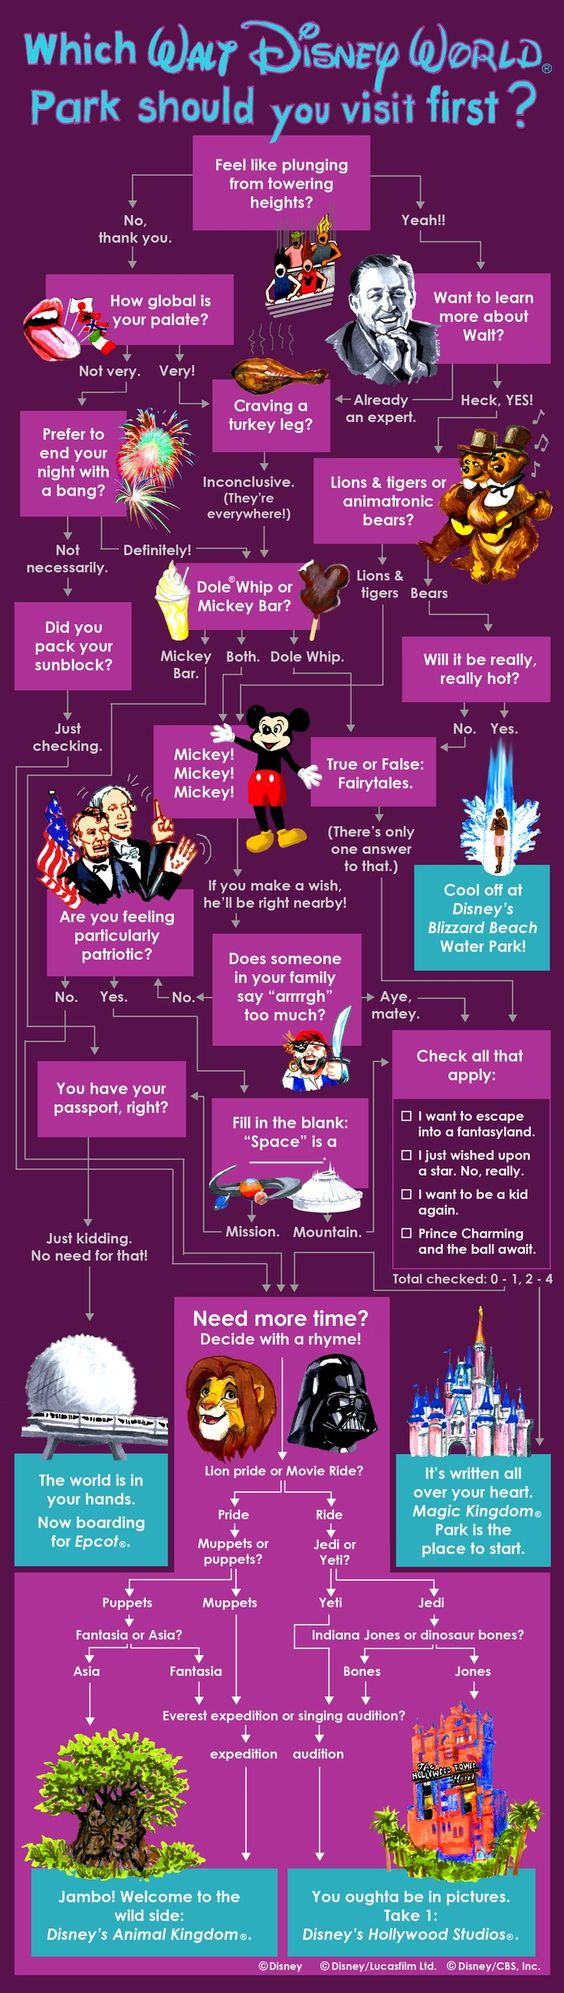 Whether planning your next vacation or trying to decide what to do tomorrow, here is a tool to help you choose the next Walt Disney World theme park you should visit. Stay at www.orlandocondoatlegacydunes.com